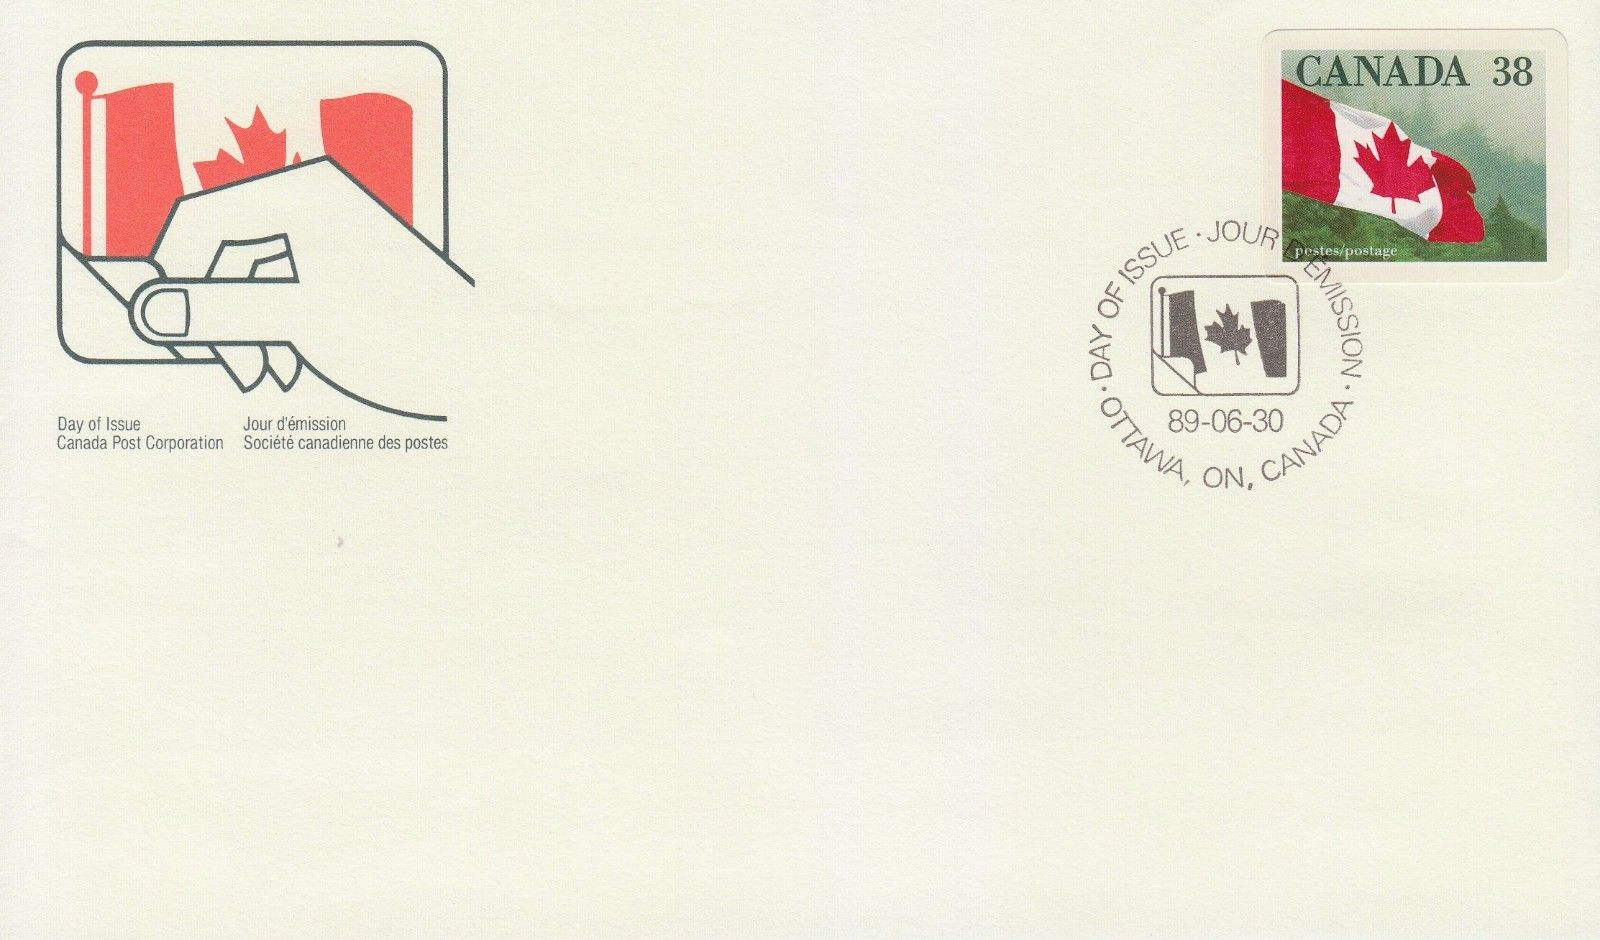 Canada - Scott #1191 (1989) first day cover